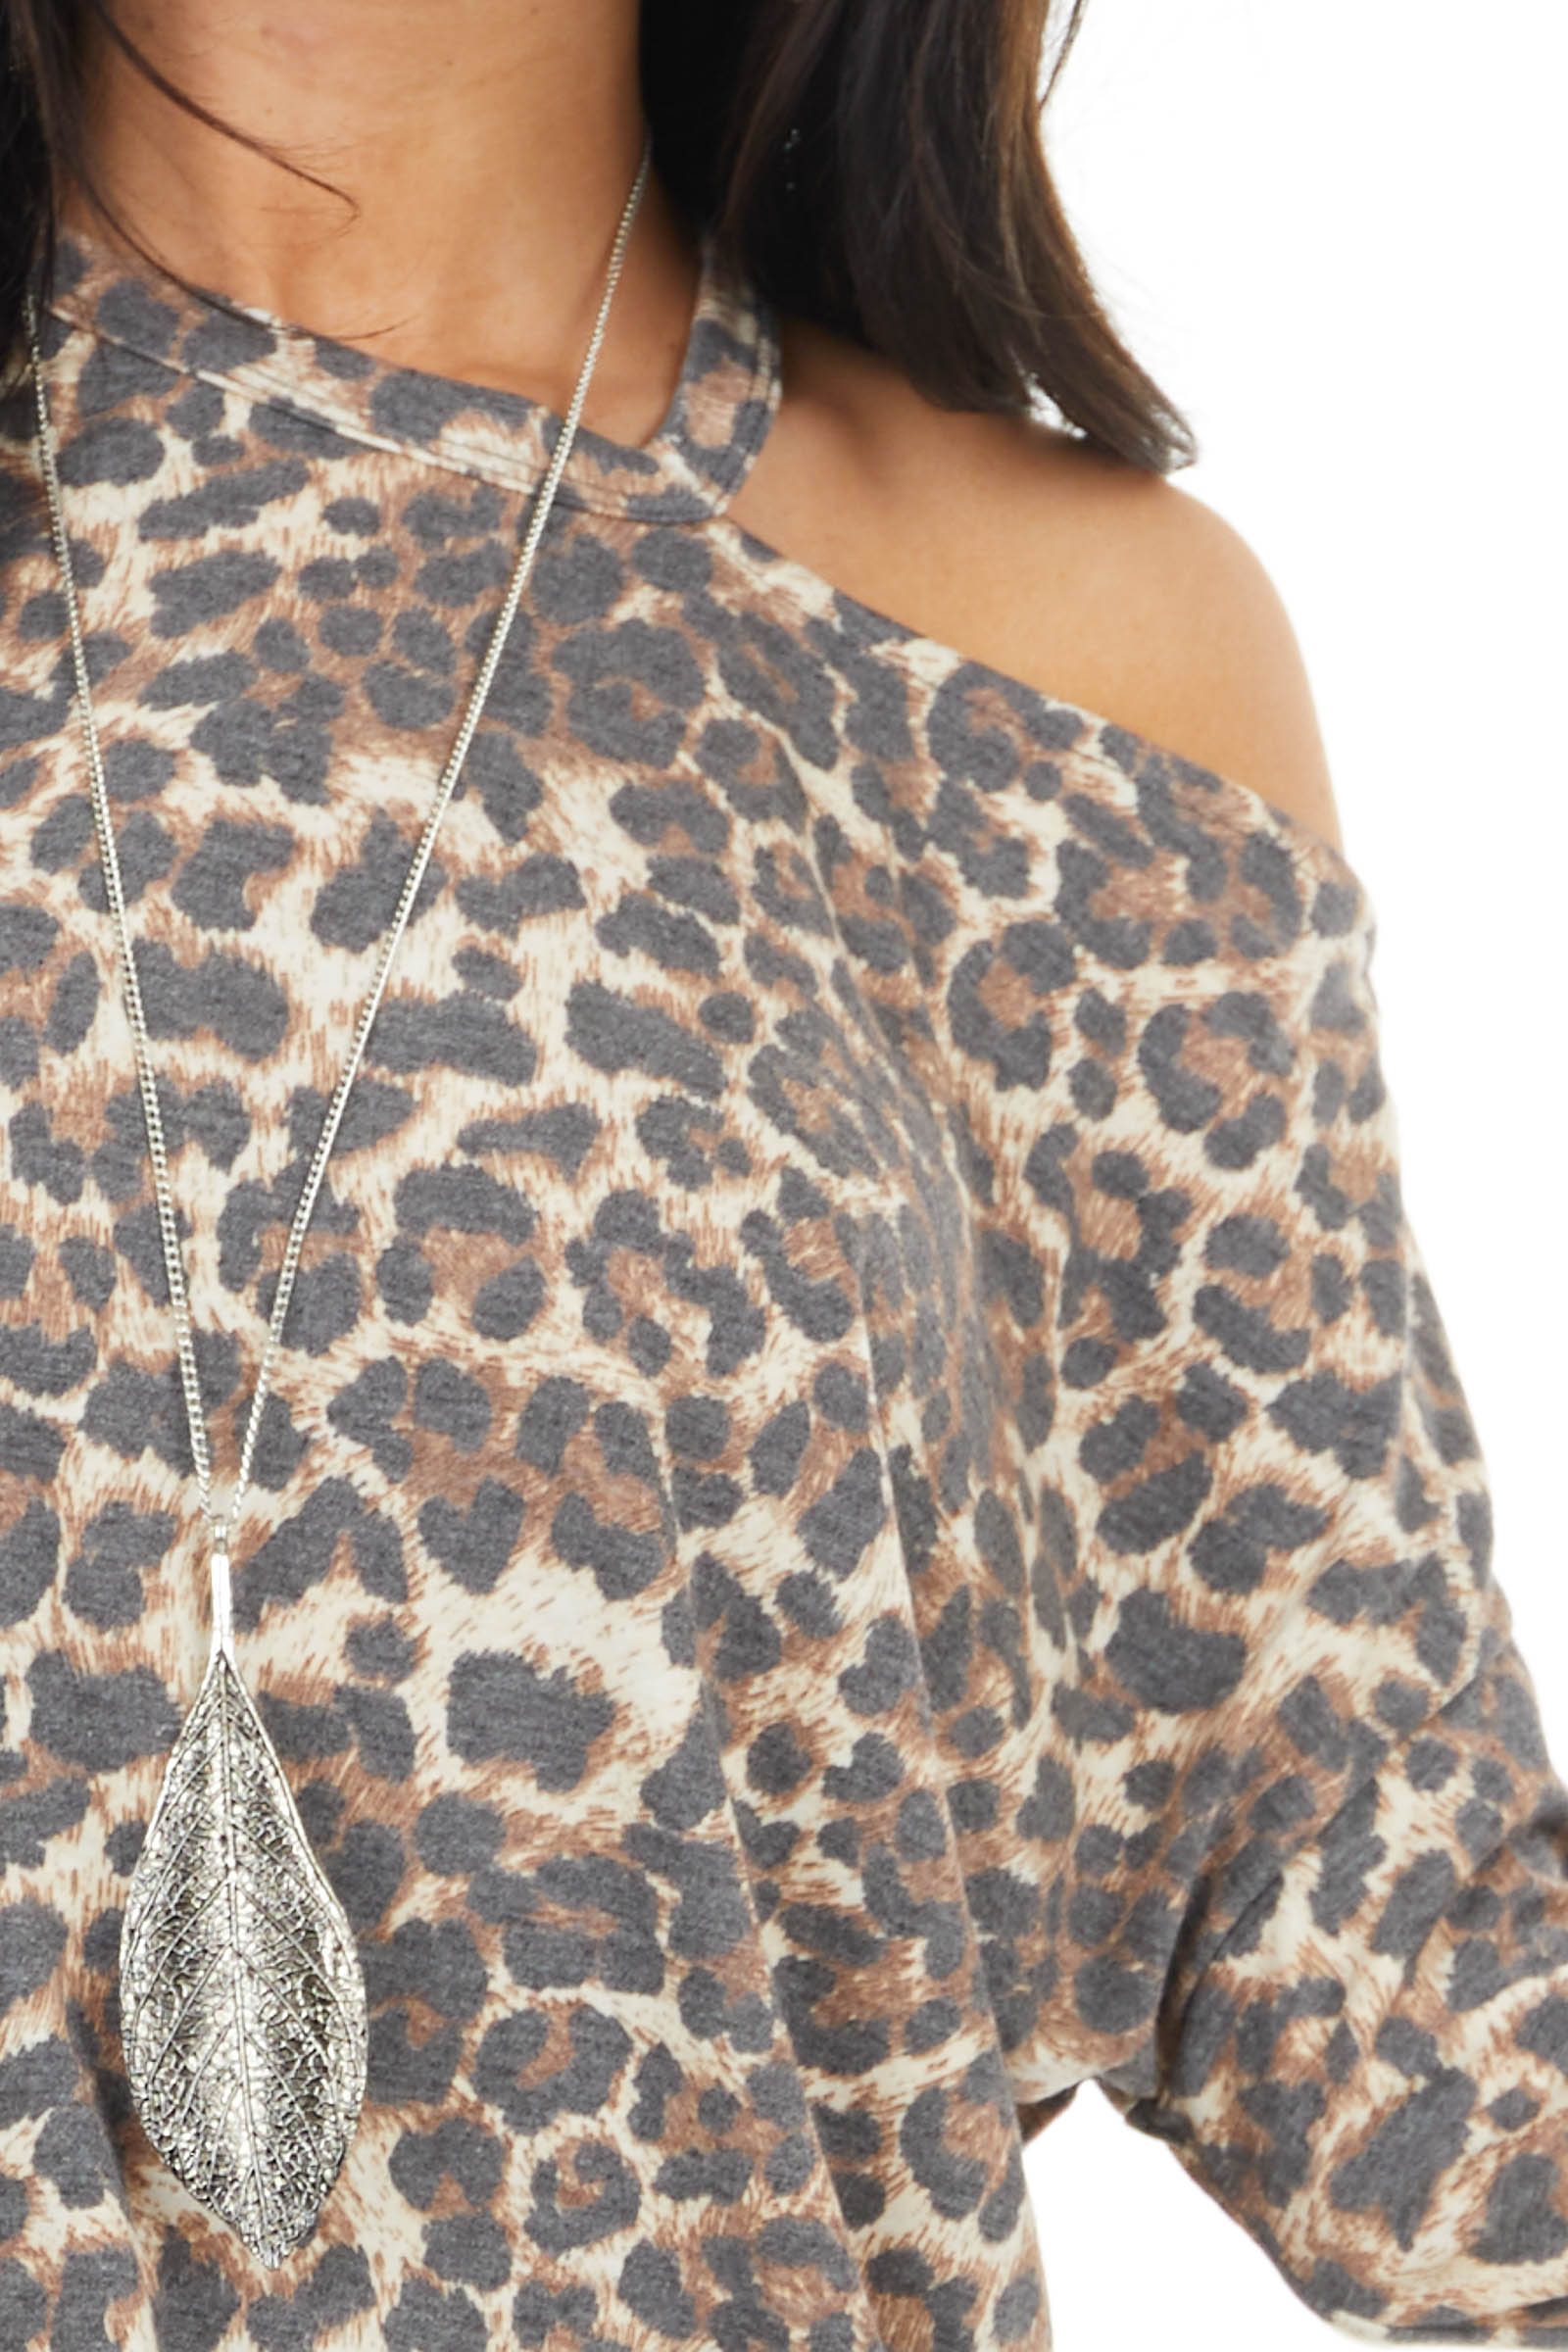 Cognac Leopard Print Long Sleeve Top with Cutout Detail